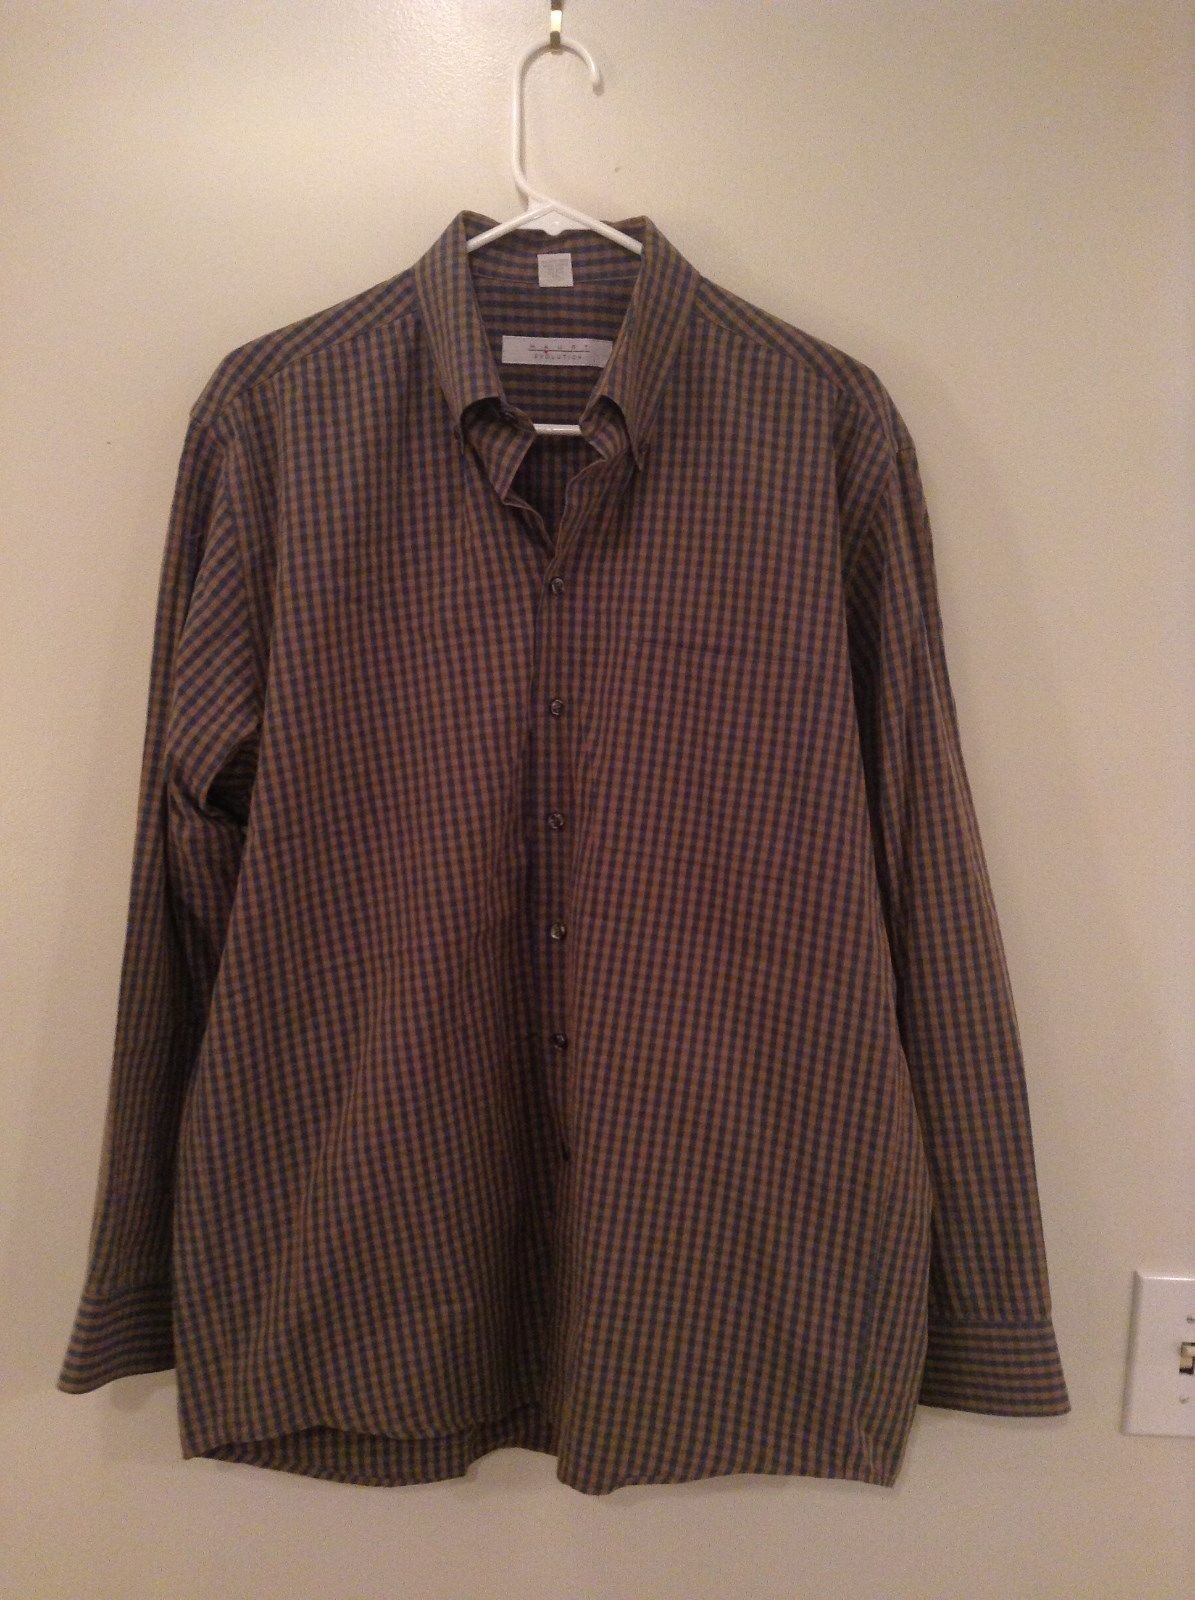 Haupt Evolution Blue Tan Checkered Button Up Shirt Long Sleeves Size Large